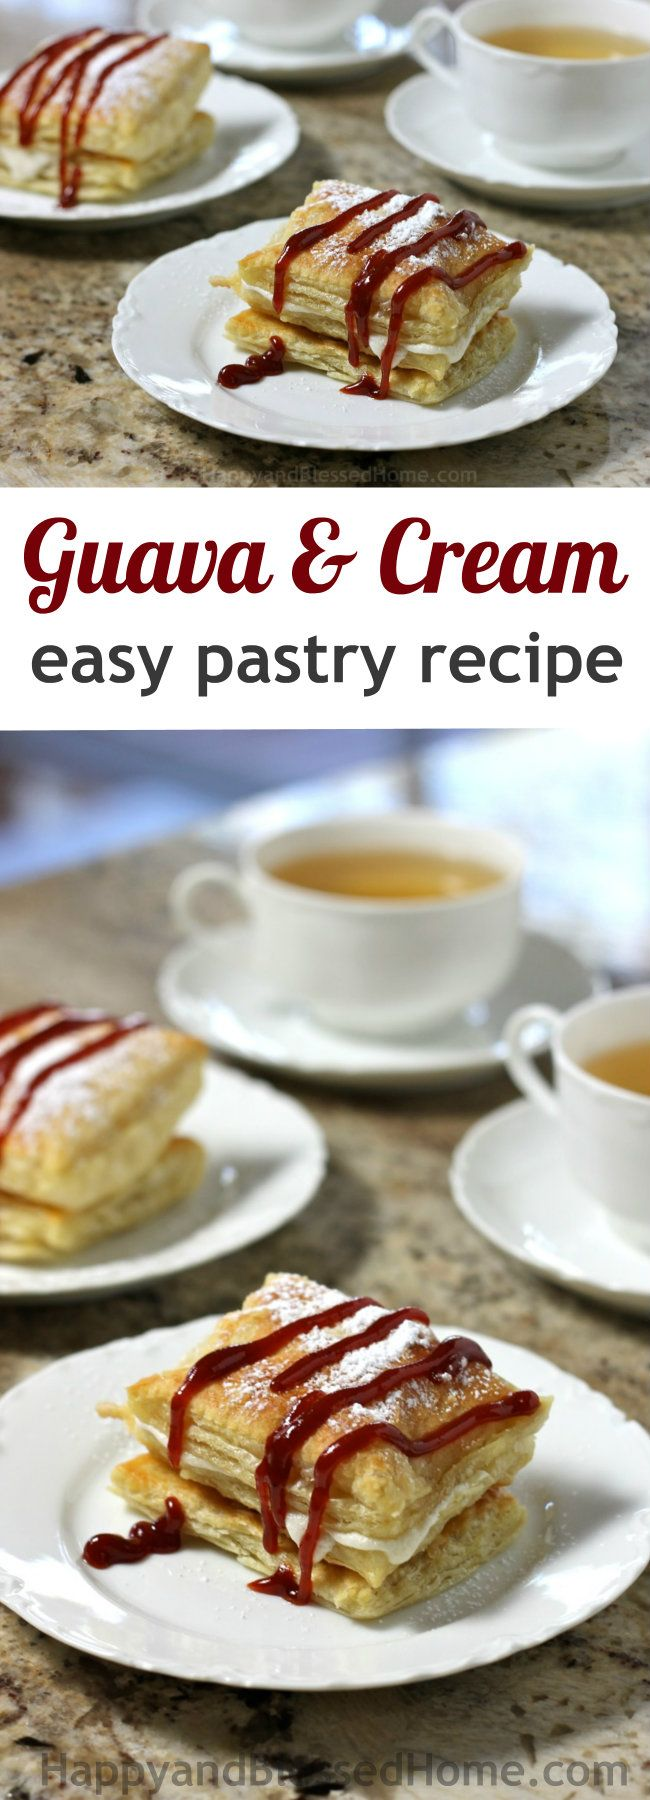 Easy Recipe for Guava and Cream Pastry Dessert inspired by Cuban culture from HappyandBlessedHome.com #PalmoliveMultiSurface & #Ad Fabulous dessert recipe, easy to make with only a few ingredients, guava pastry, cream-filled pastry, easy dessert recipe